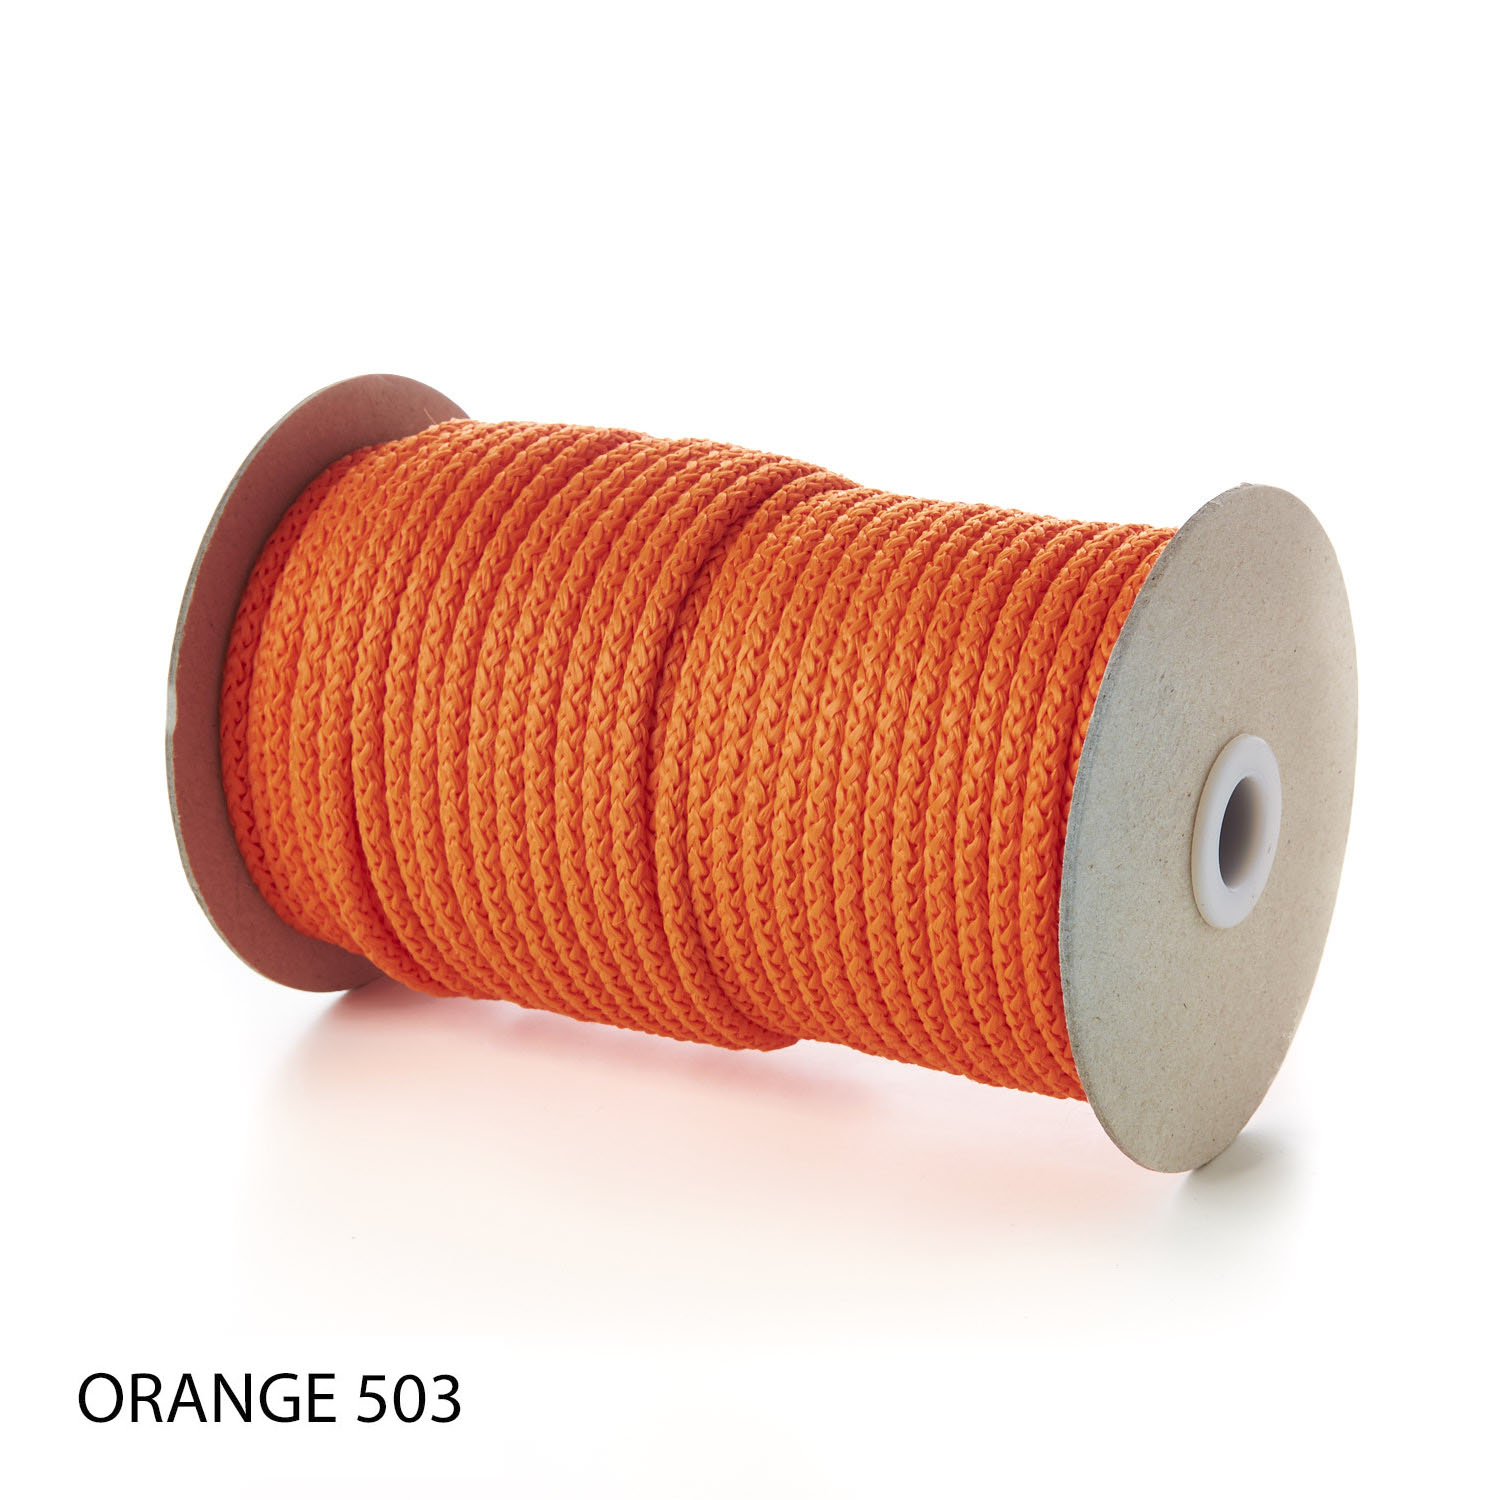 Orange Polypropylene Knitted Cords Round String Rope Strong